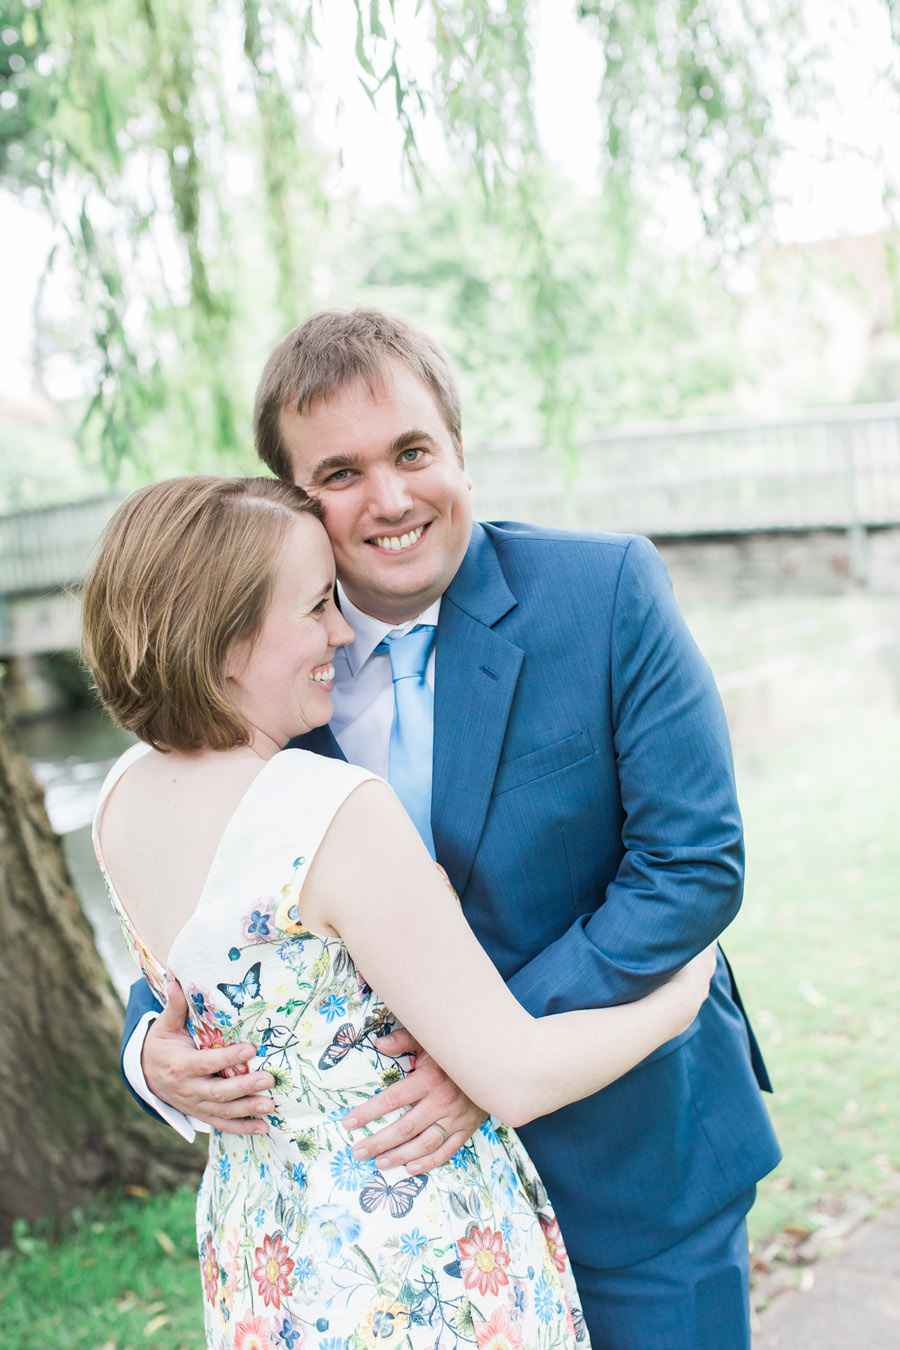 Hertford Castle intimate and alternative English wedding, photo credit Siobhan H Photography (18)